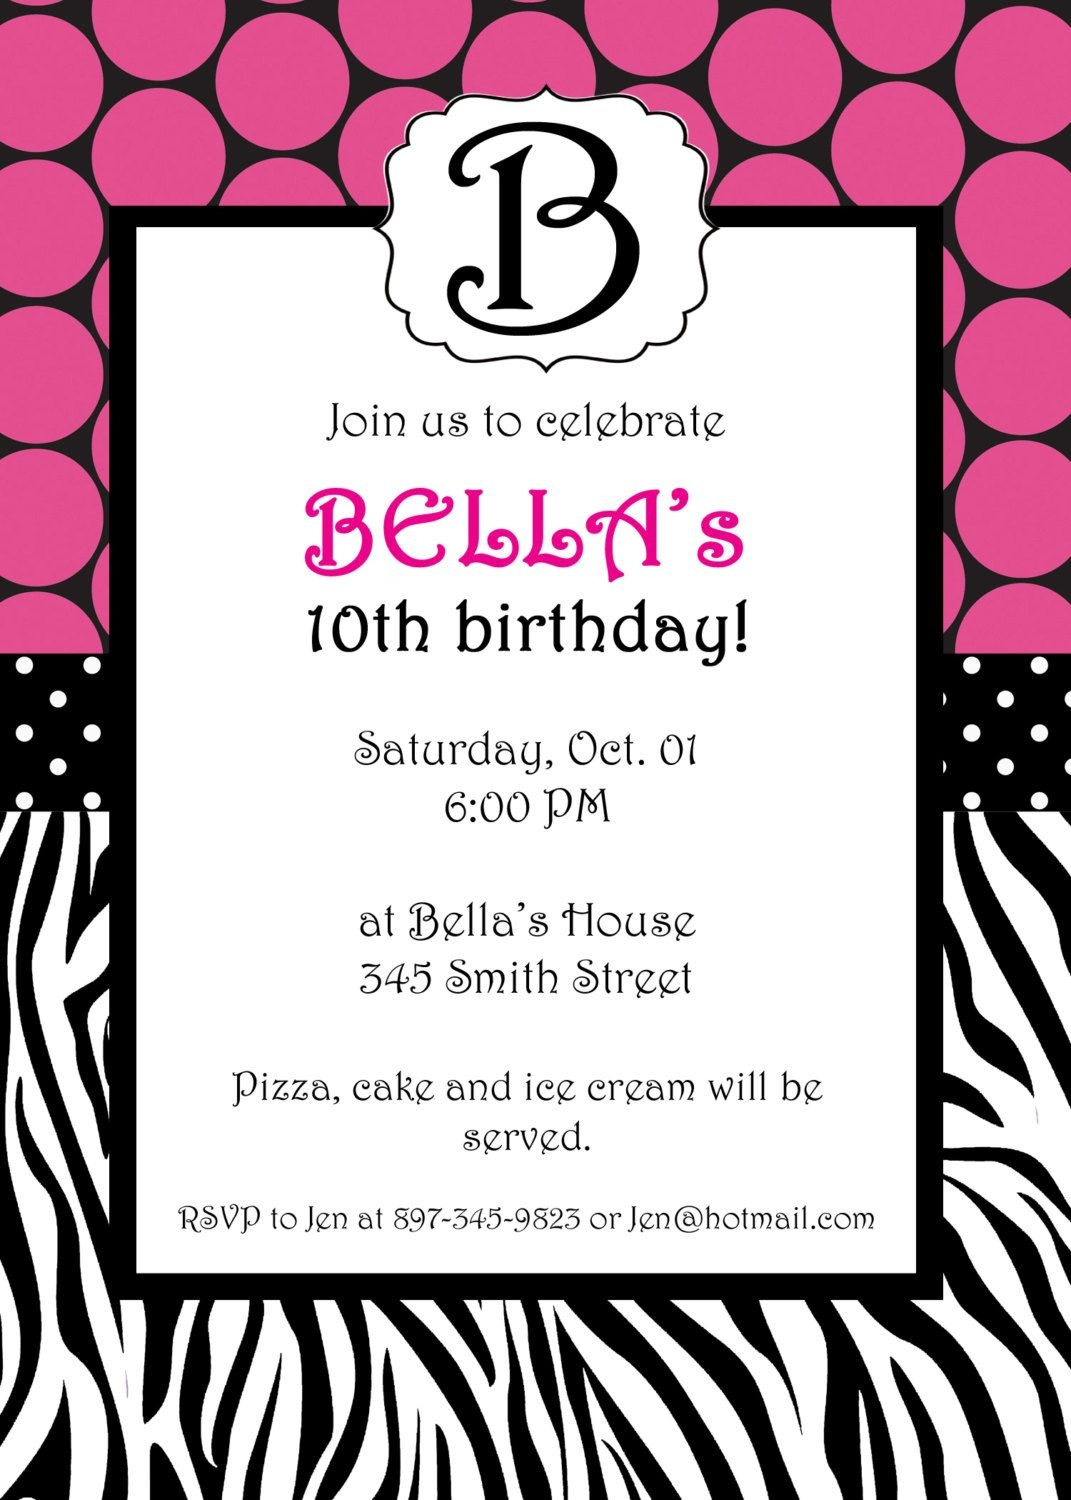 Free Printable Zebra Print Invitations Baby Shower | Emma | Free - Zebra Print Party Invitations Printable Free